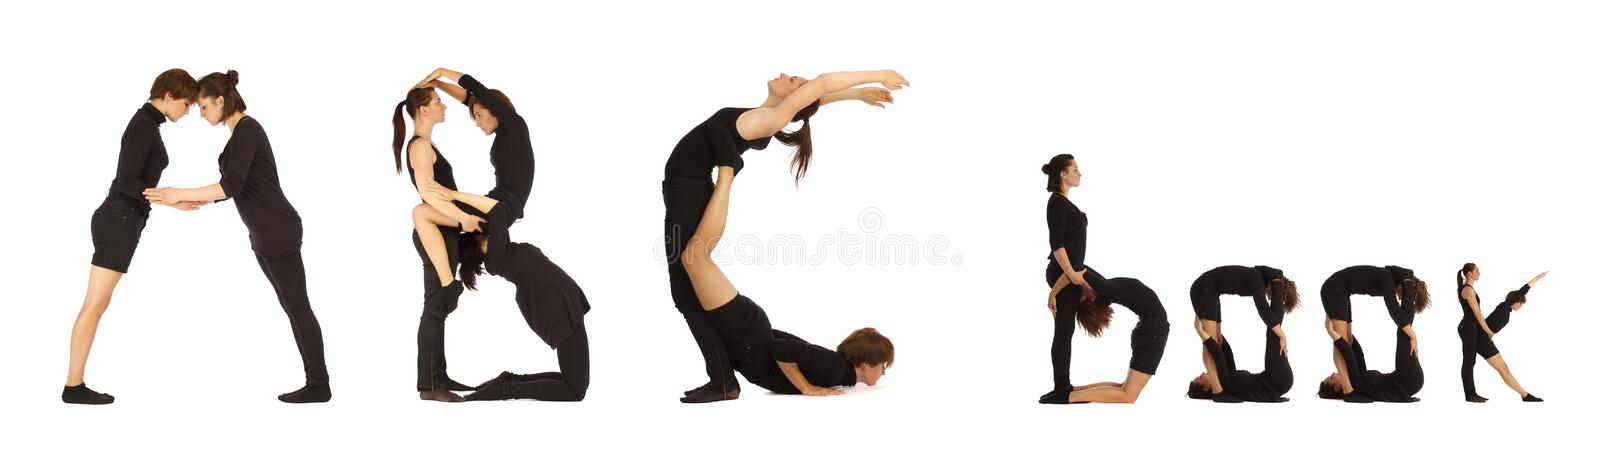 Black dressed people forming ABC book word stock photos